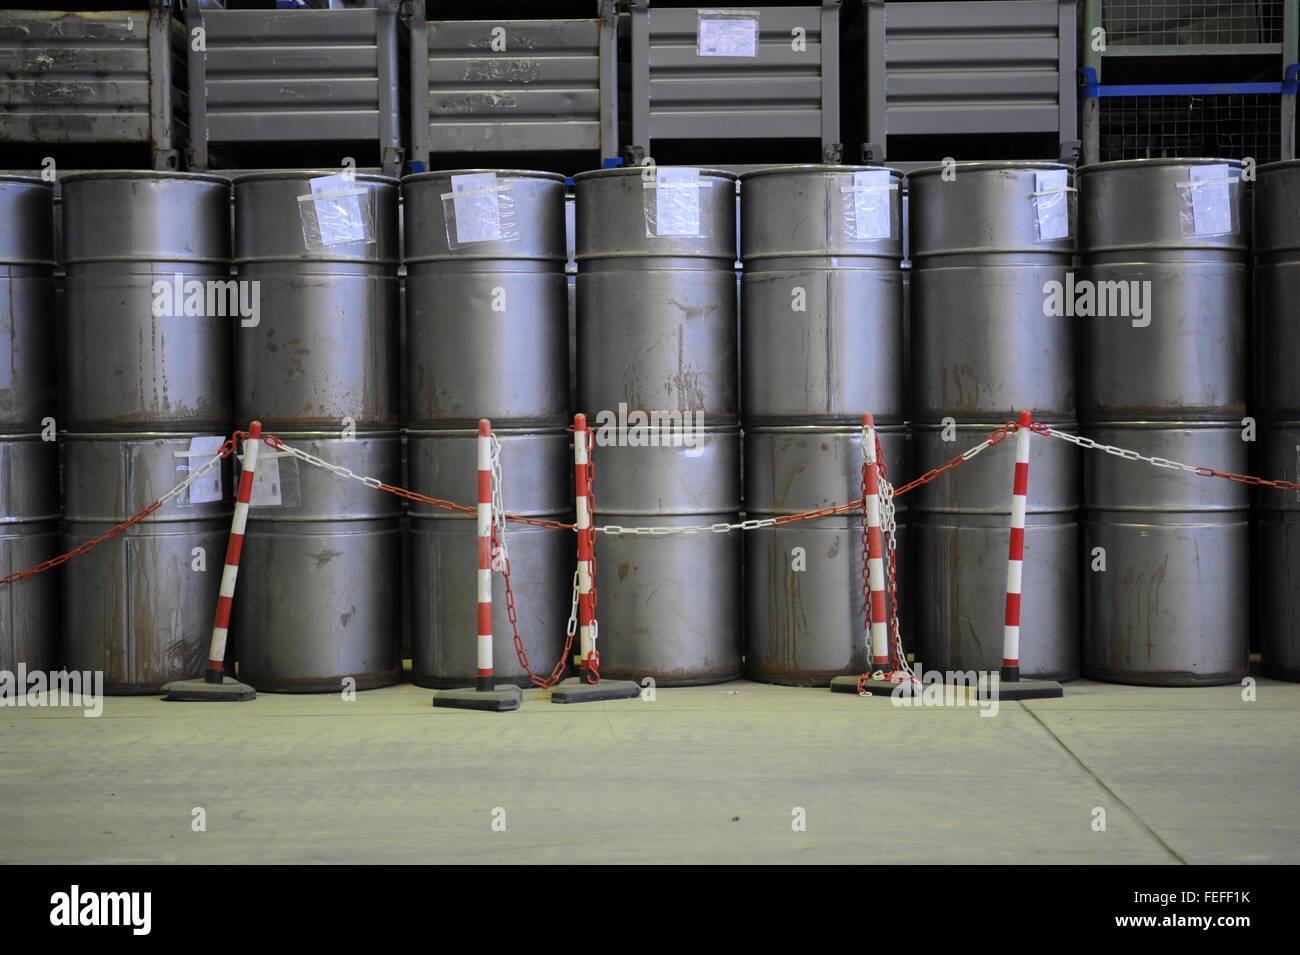 nuclear waste at the Greifswald power station, performing the world's largest decommissioning project of 8 reactor - Stock Image